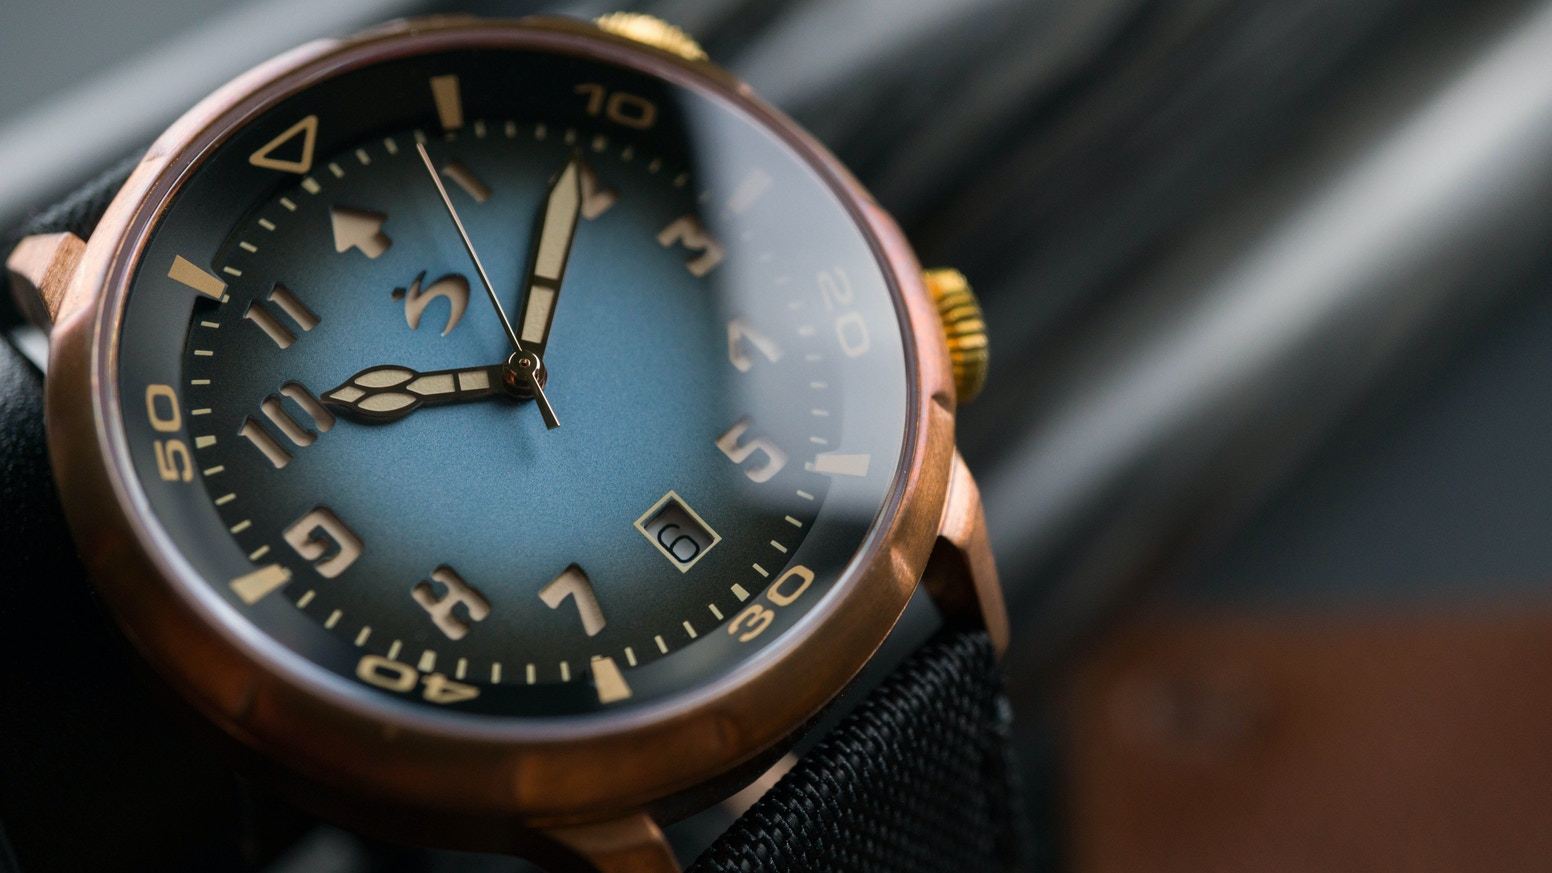 Redefining a classic automatic watch, crafted from bronze which develops a patina unique to you at a sweet price that's beyond standard